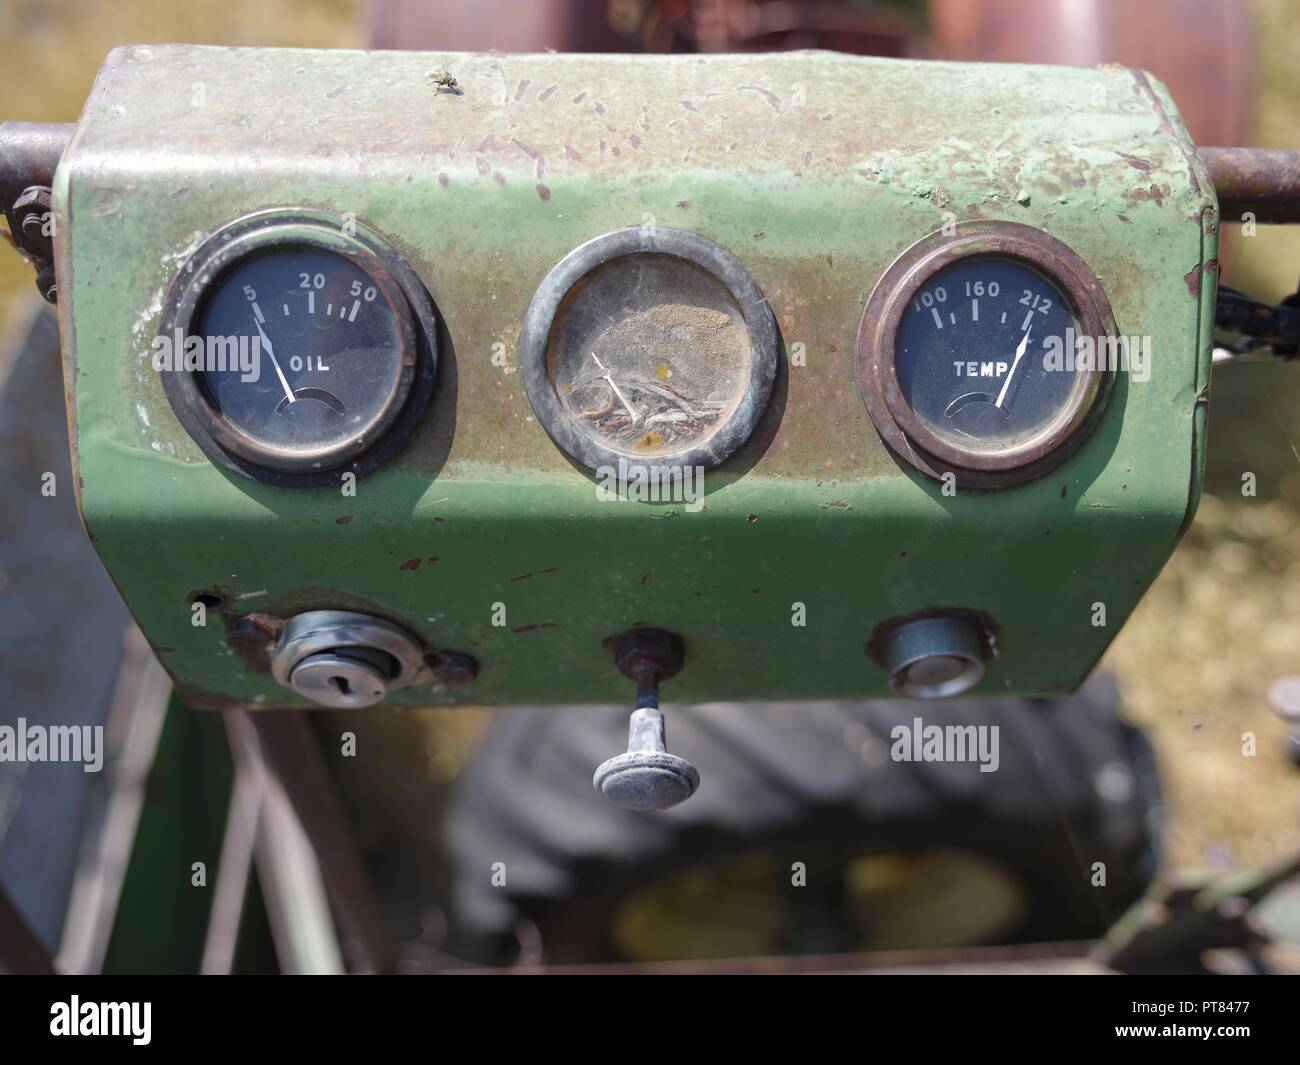 Instrument panel detail, farm equipment, Brian Martin RMSF, large file size - Stock Image